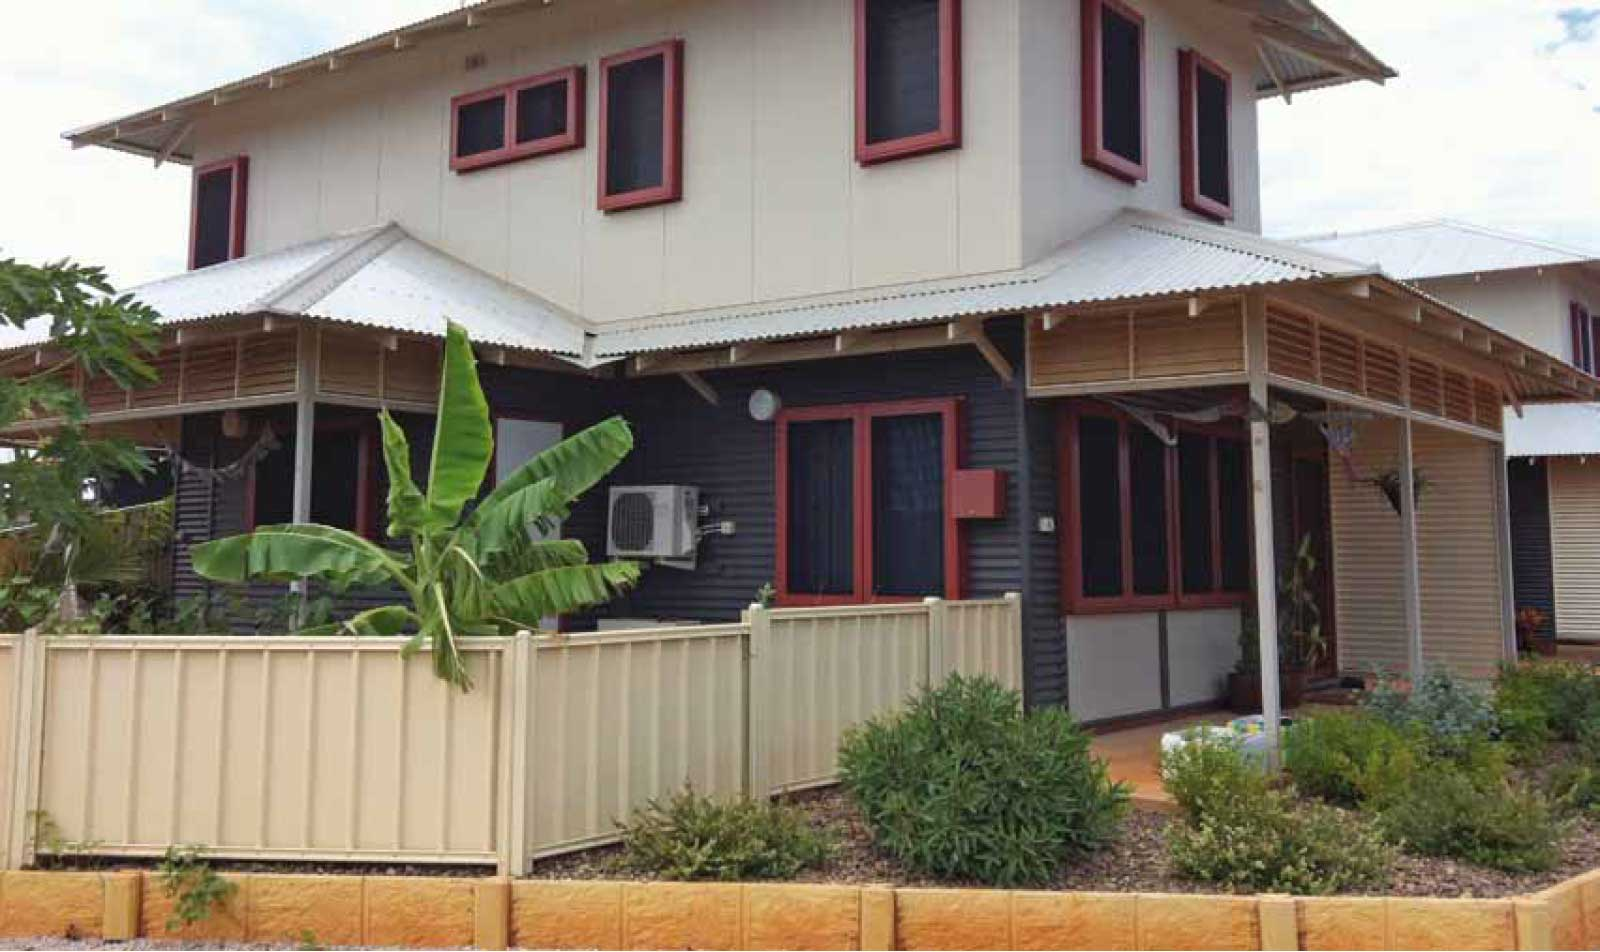 A bungalow windows protected with Crimsafe Cyclone Screens